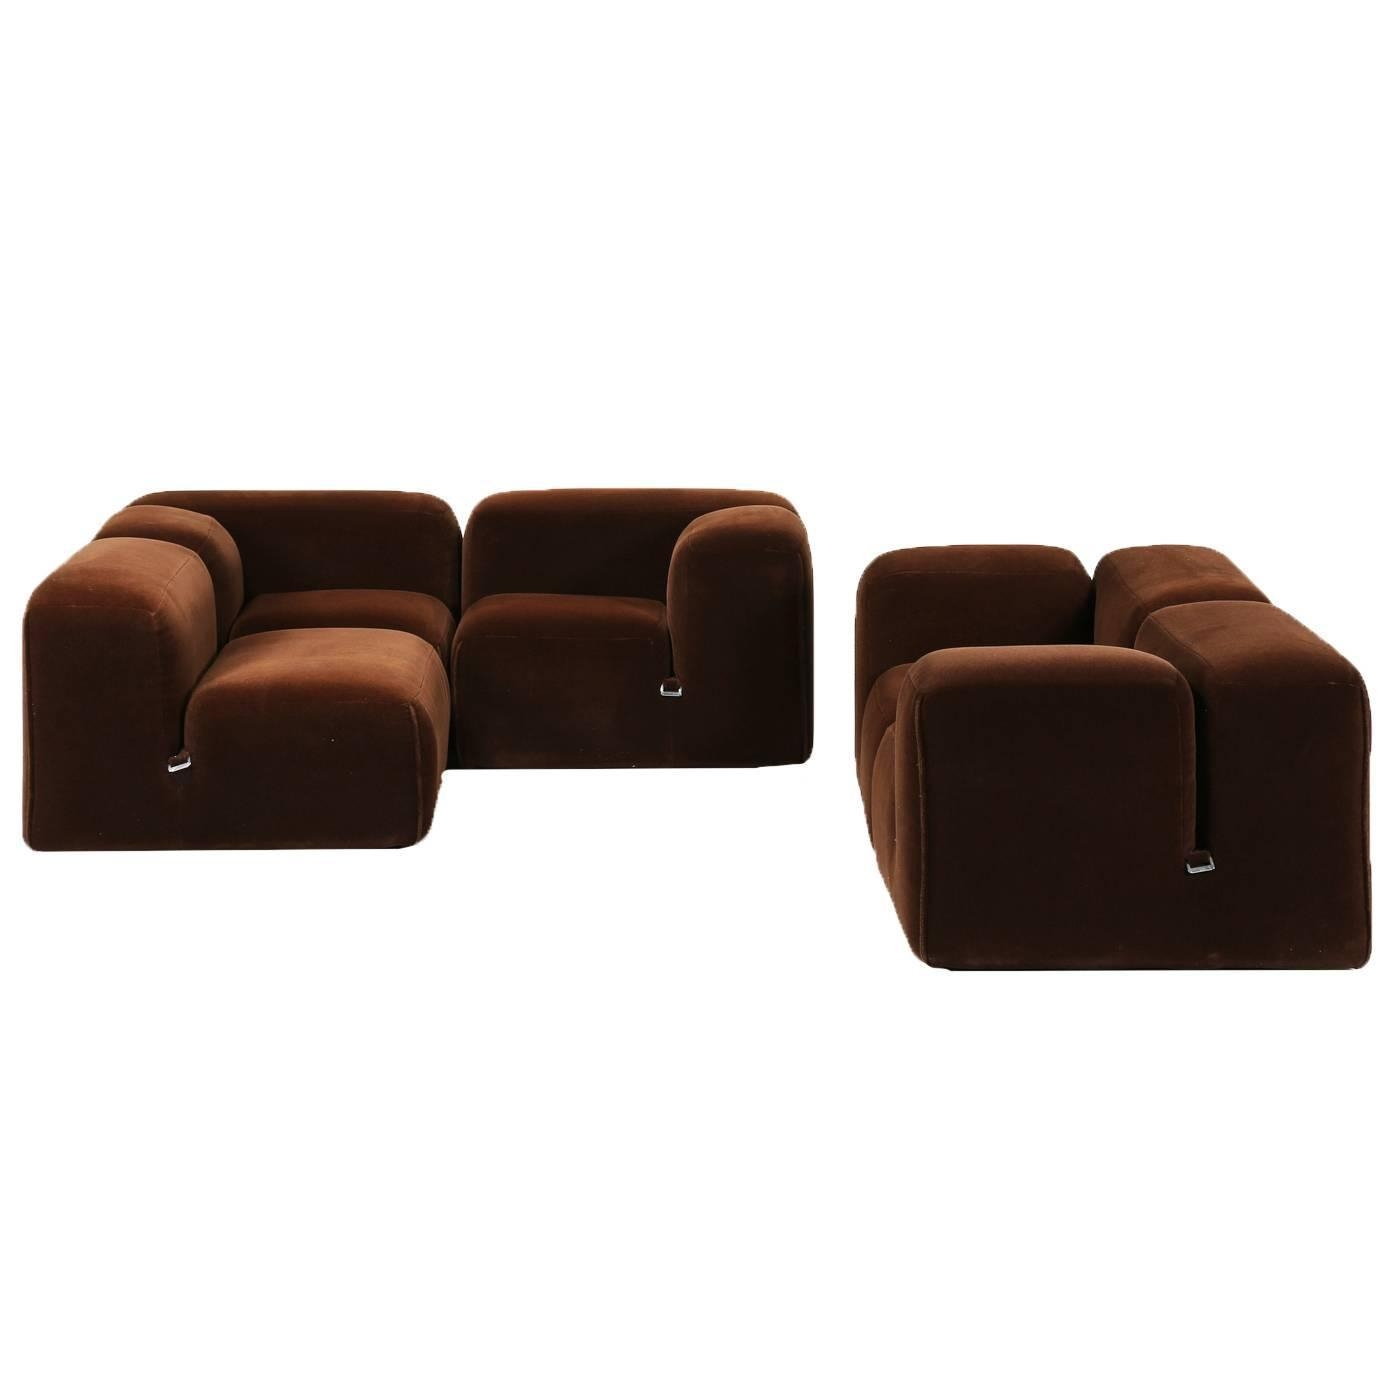 "Mario Bellini, Dark Brown Velvet ""le Mura"" Sofa Range, Cassina Spa Regarding Bellini Sofas (View 14 of 20)"